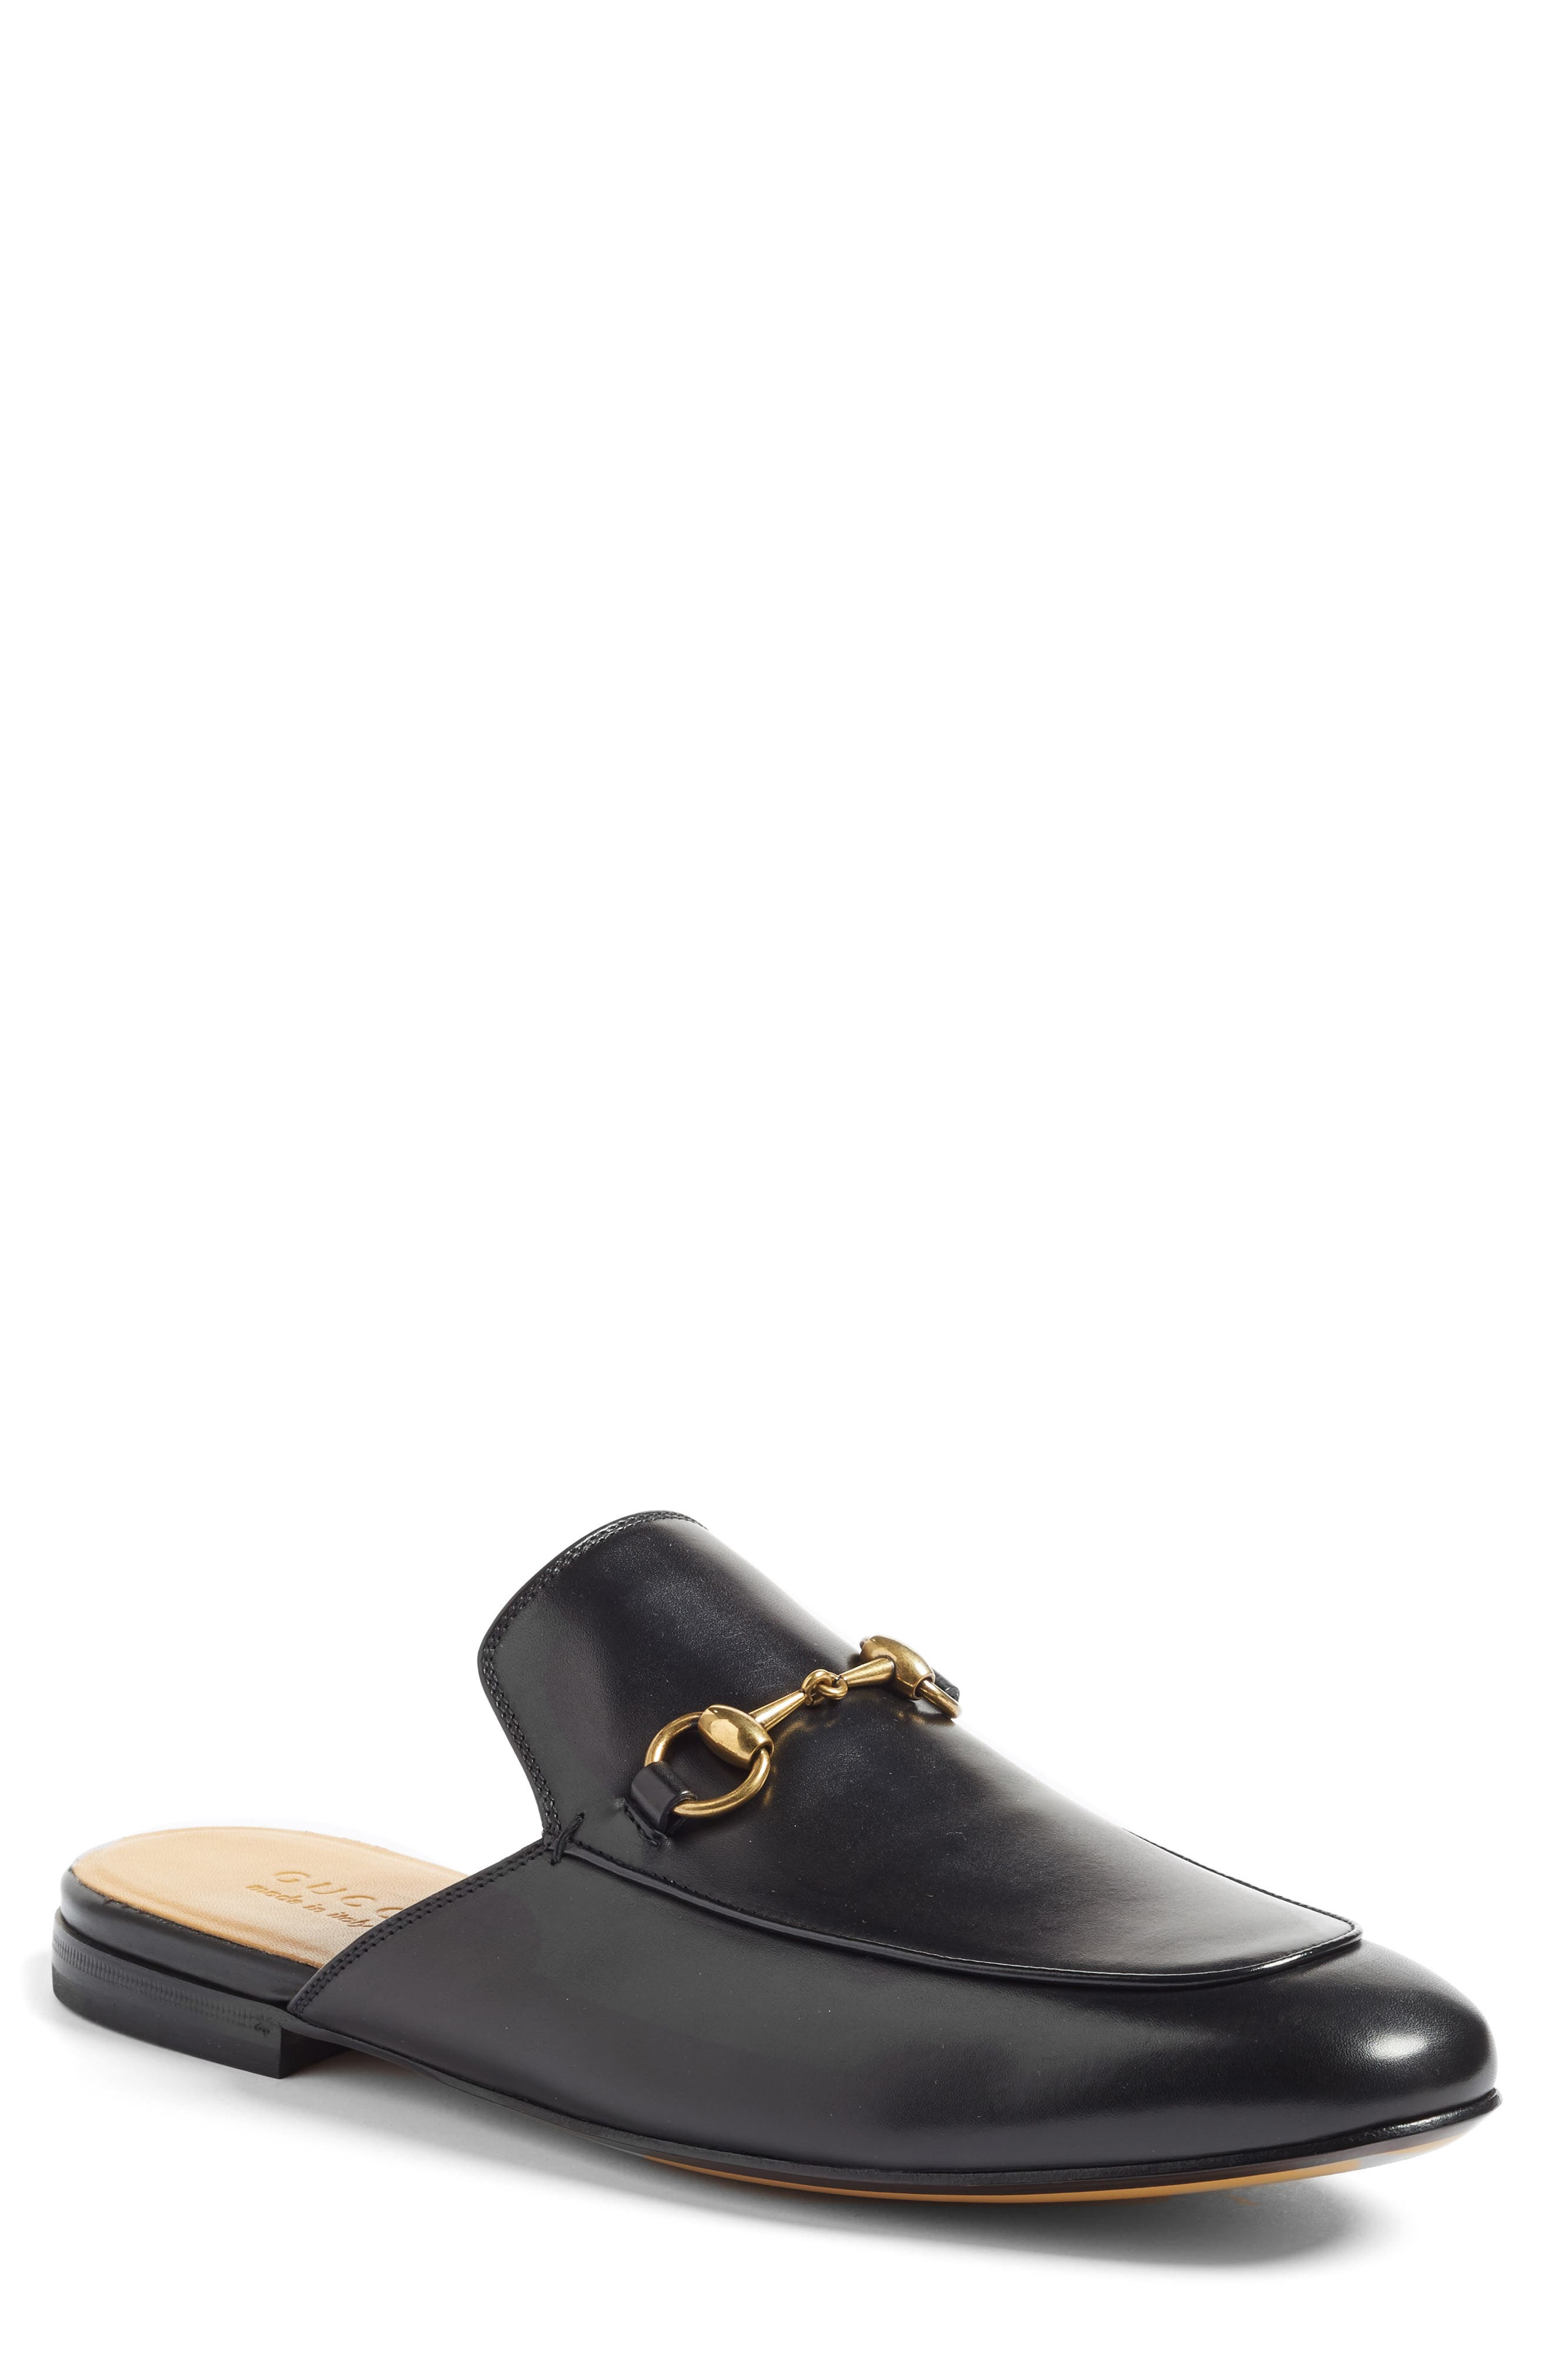 GUCCI, Straw Kings Slipper, Main thumbnail 1, color, NERO LEATHER